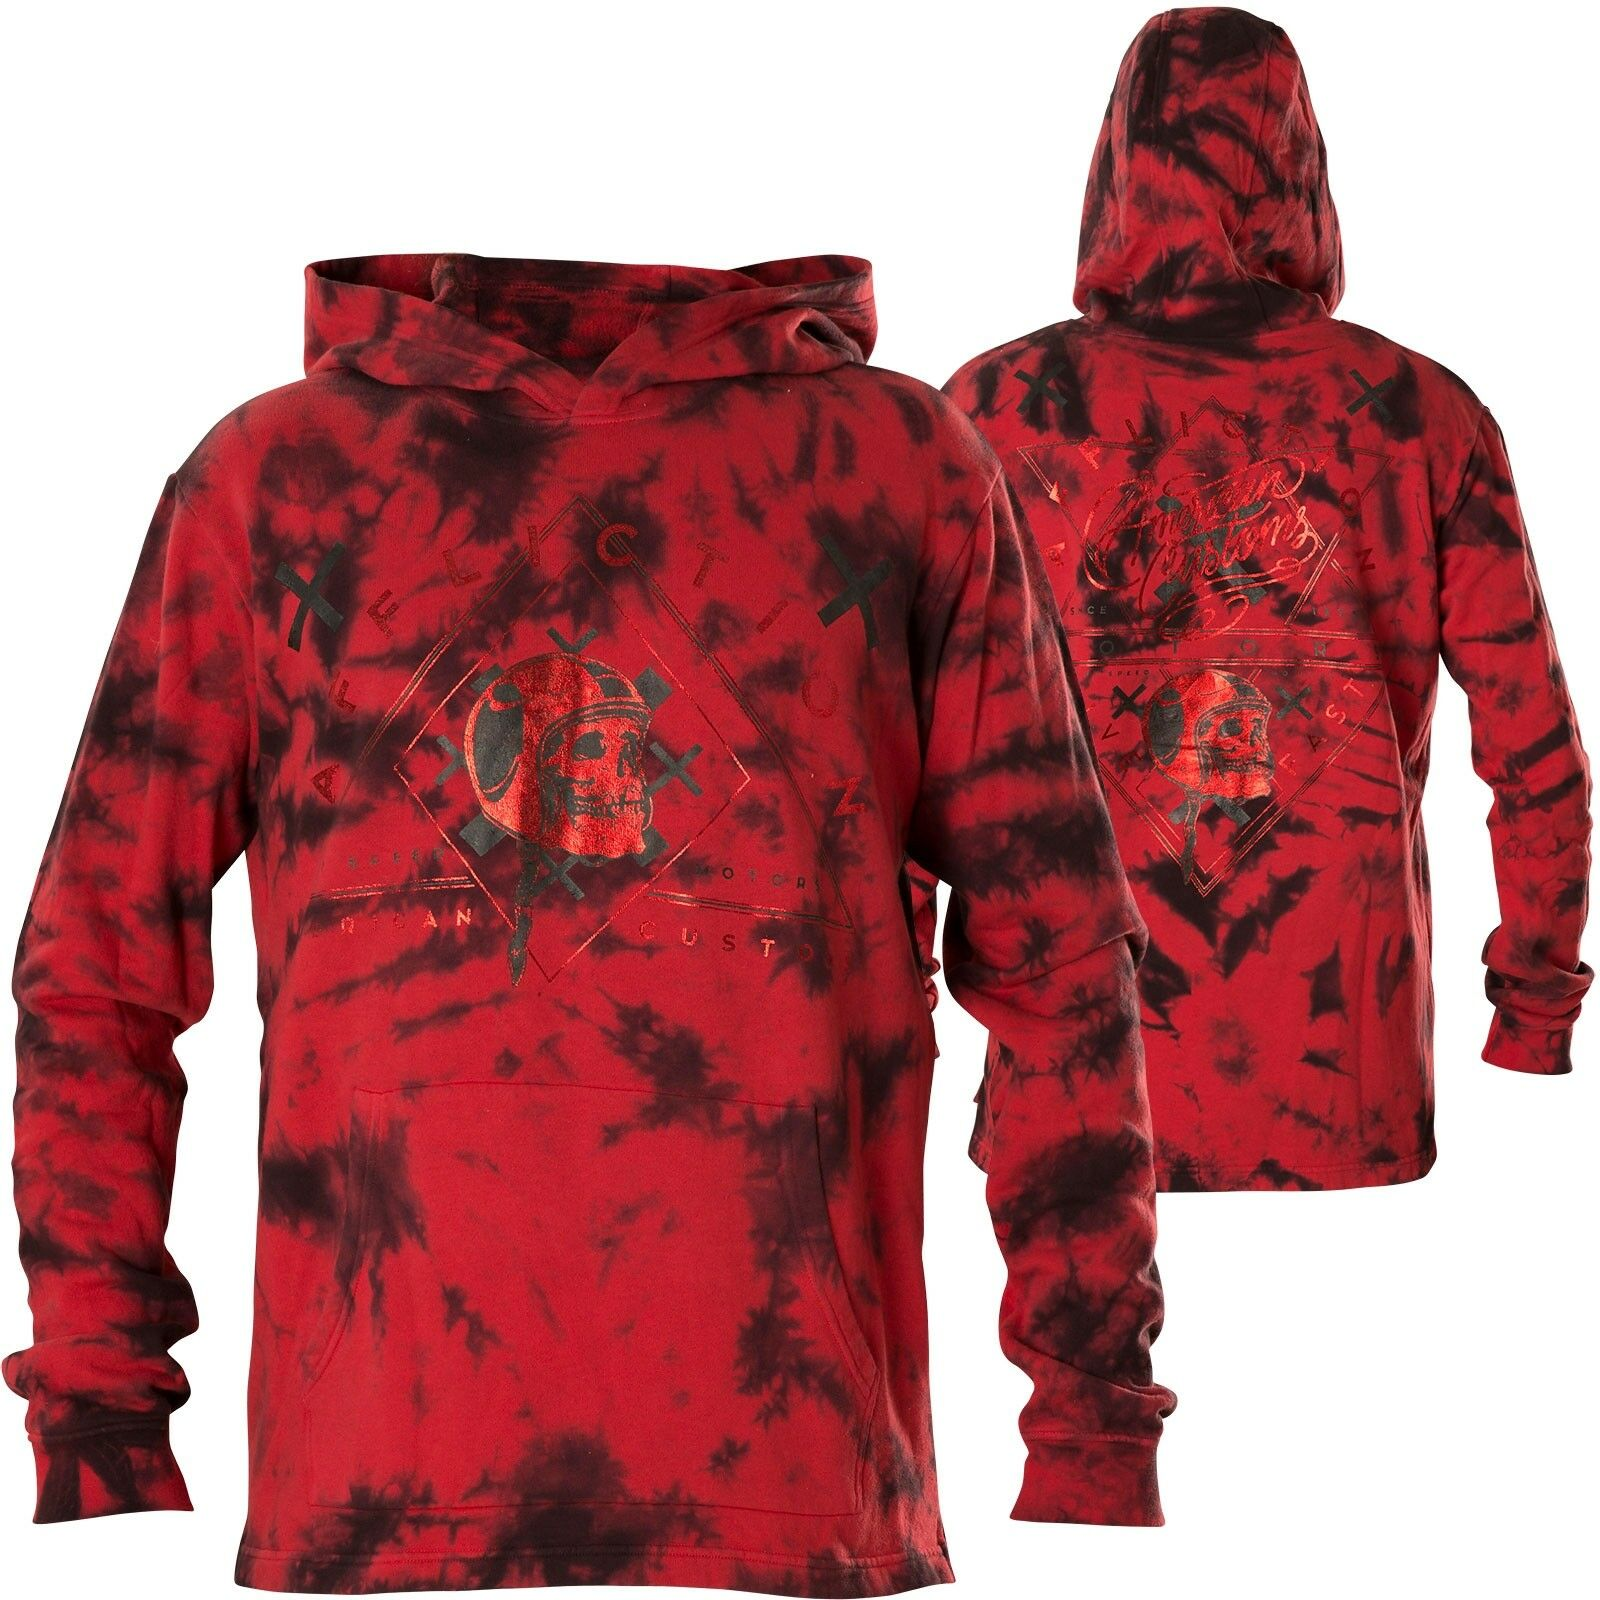 AFFLICTION Hoody AC Reckless Rot Hoodies Herren  Sweatshirts mit